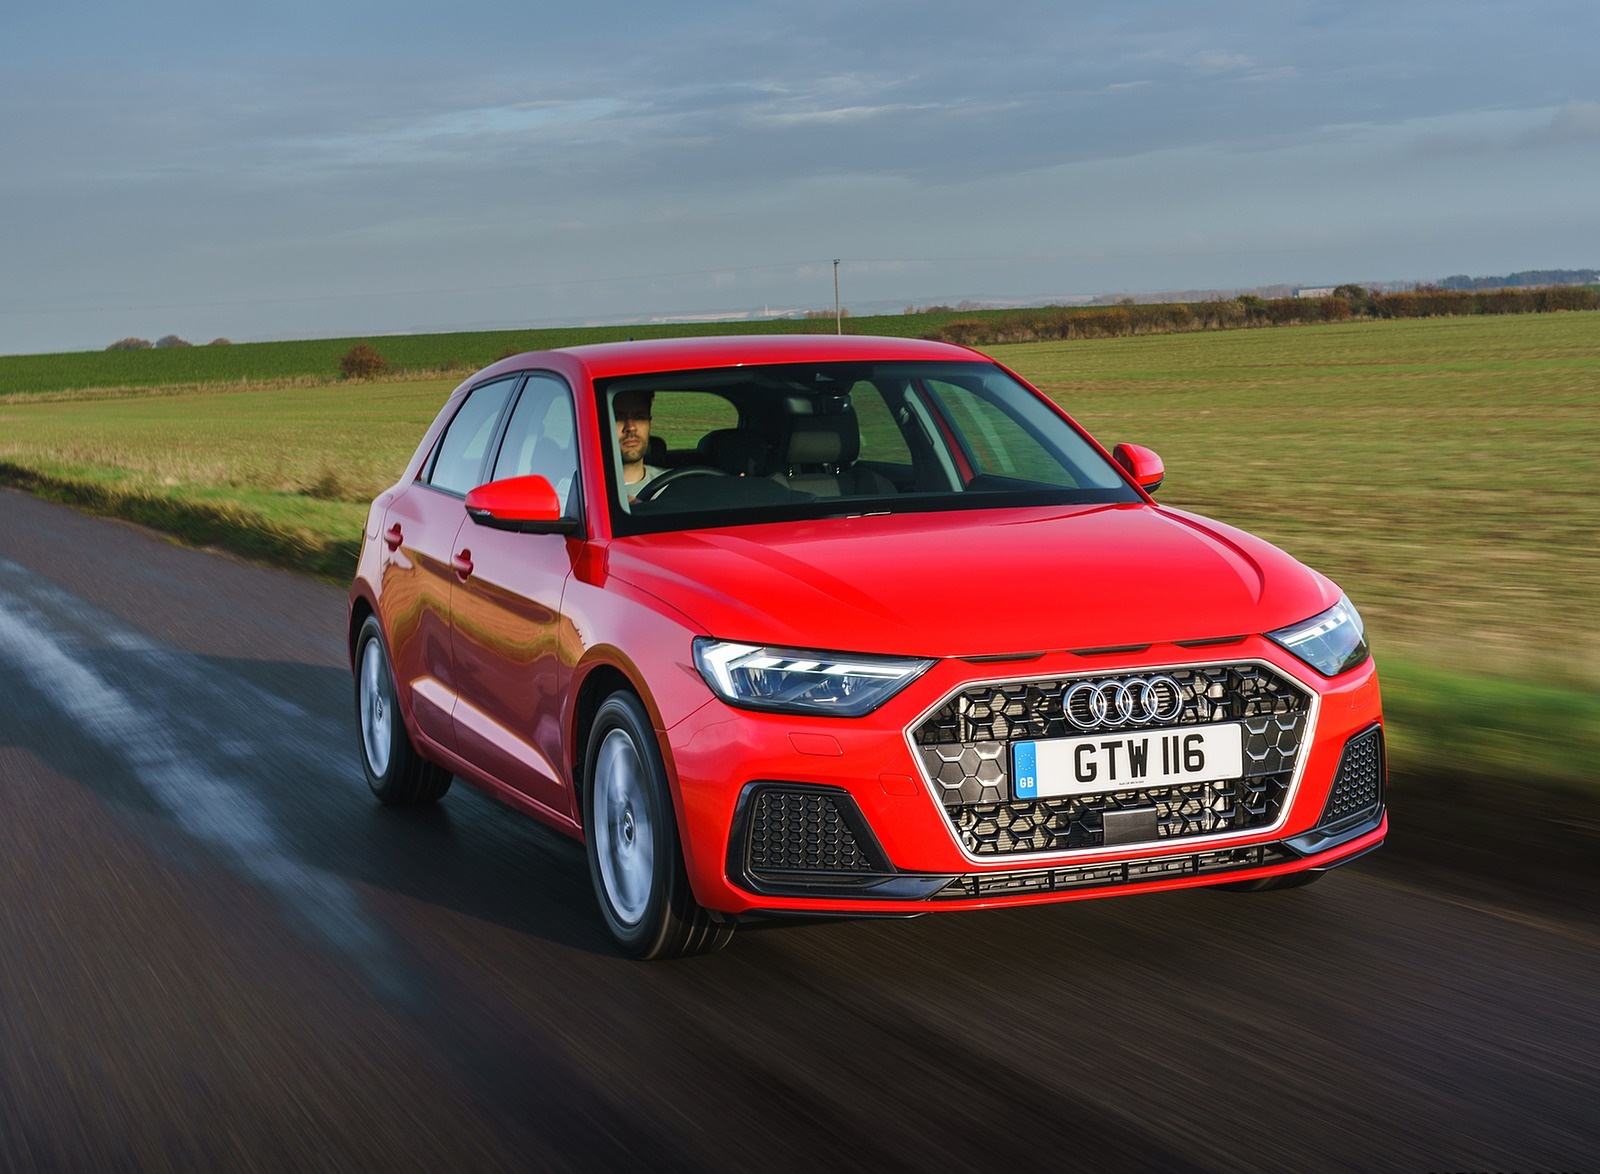 2019 Audi A1 Sportback 30 TFSI (UK-Spec) Front Wallpapers (11)